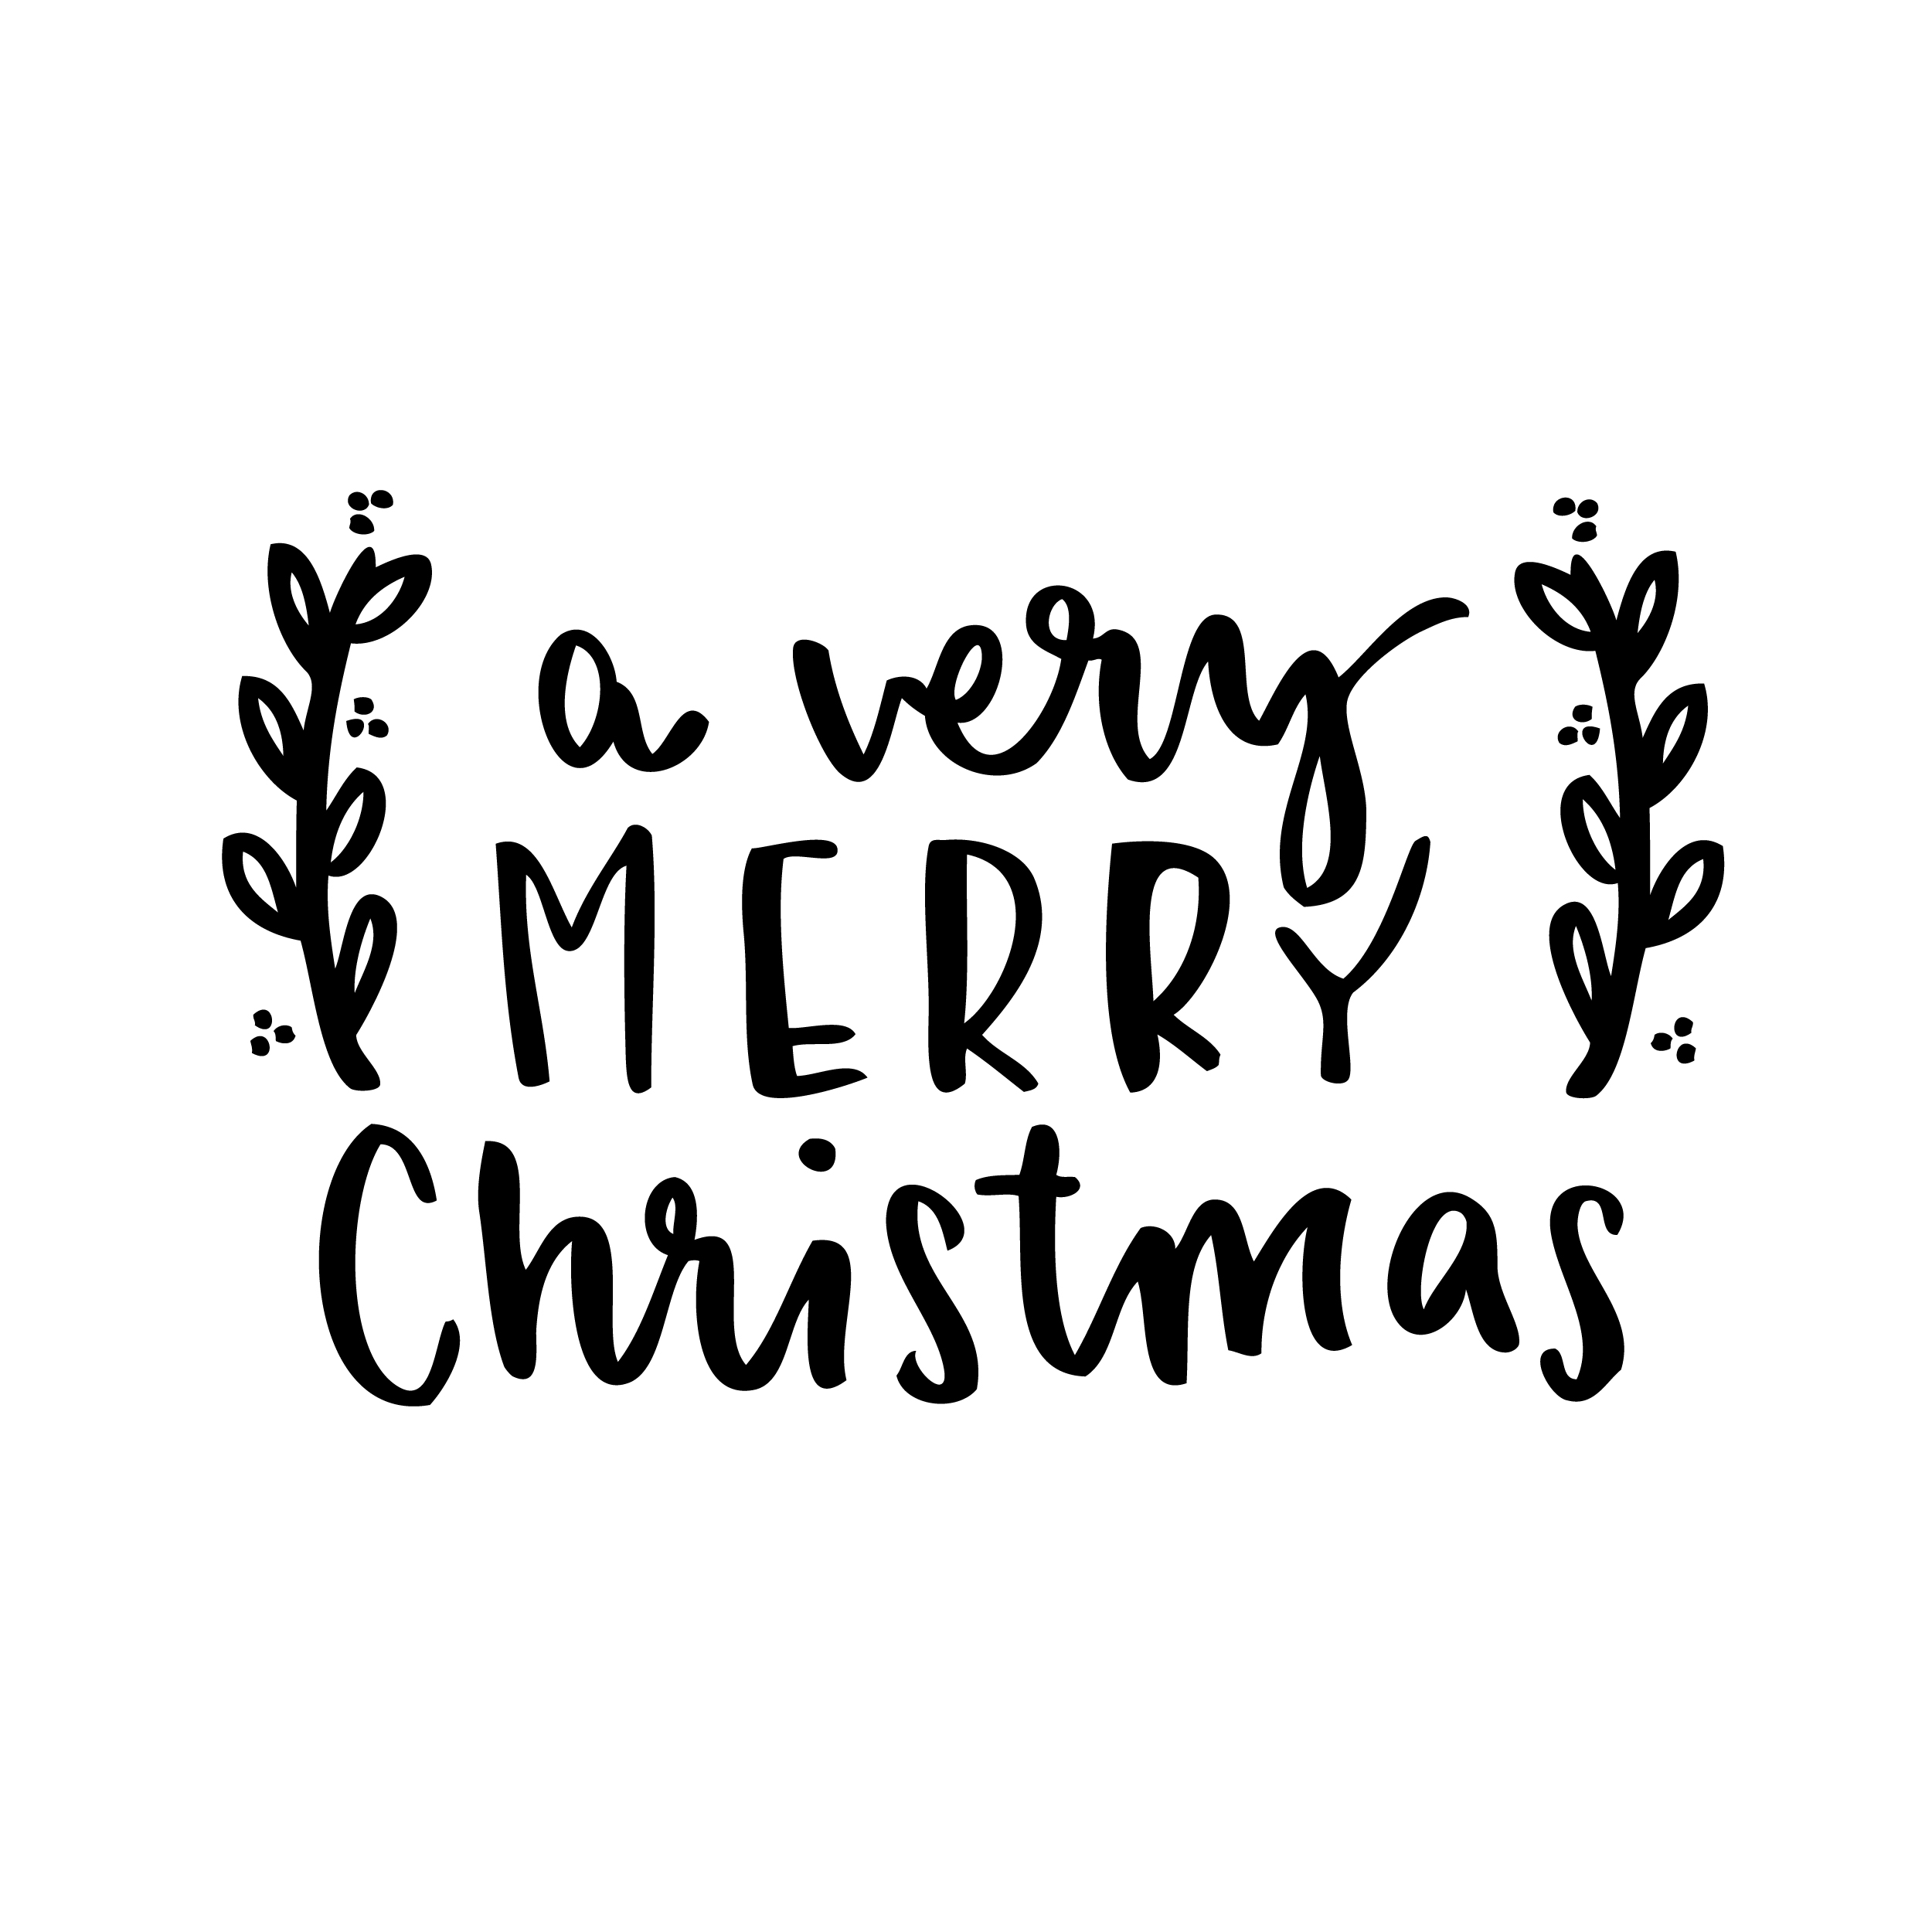 Lettering_verymerrychristmas